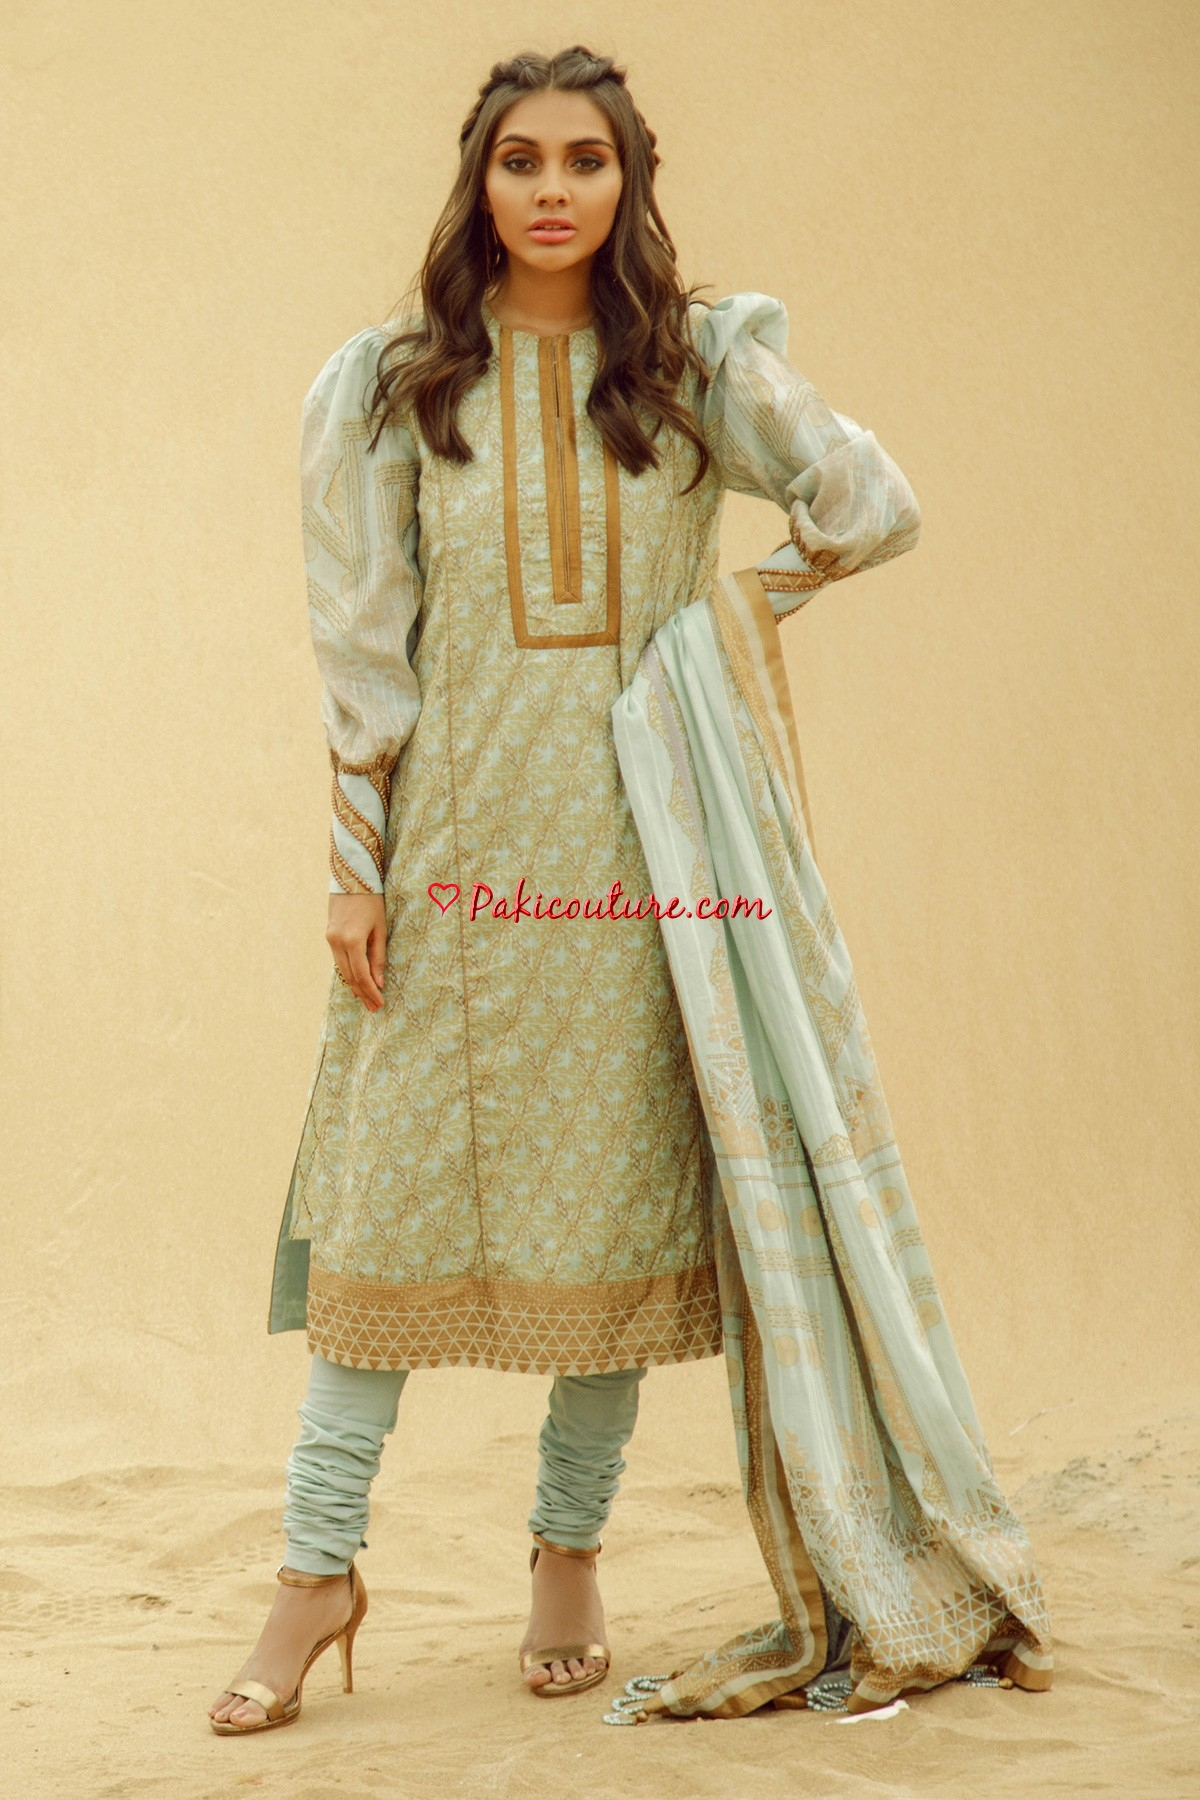 Al Karam Spring Summer Collection 2020 Shop Online Buy Pakistani Fashion Dresses Pakistani Branded Latest Clothes